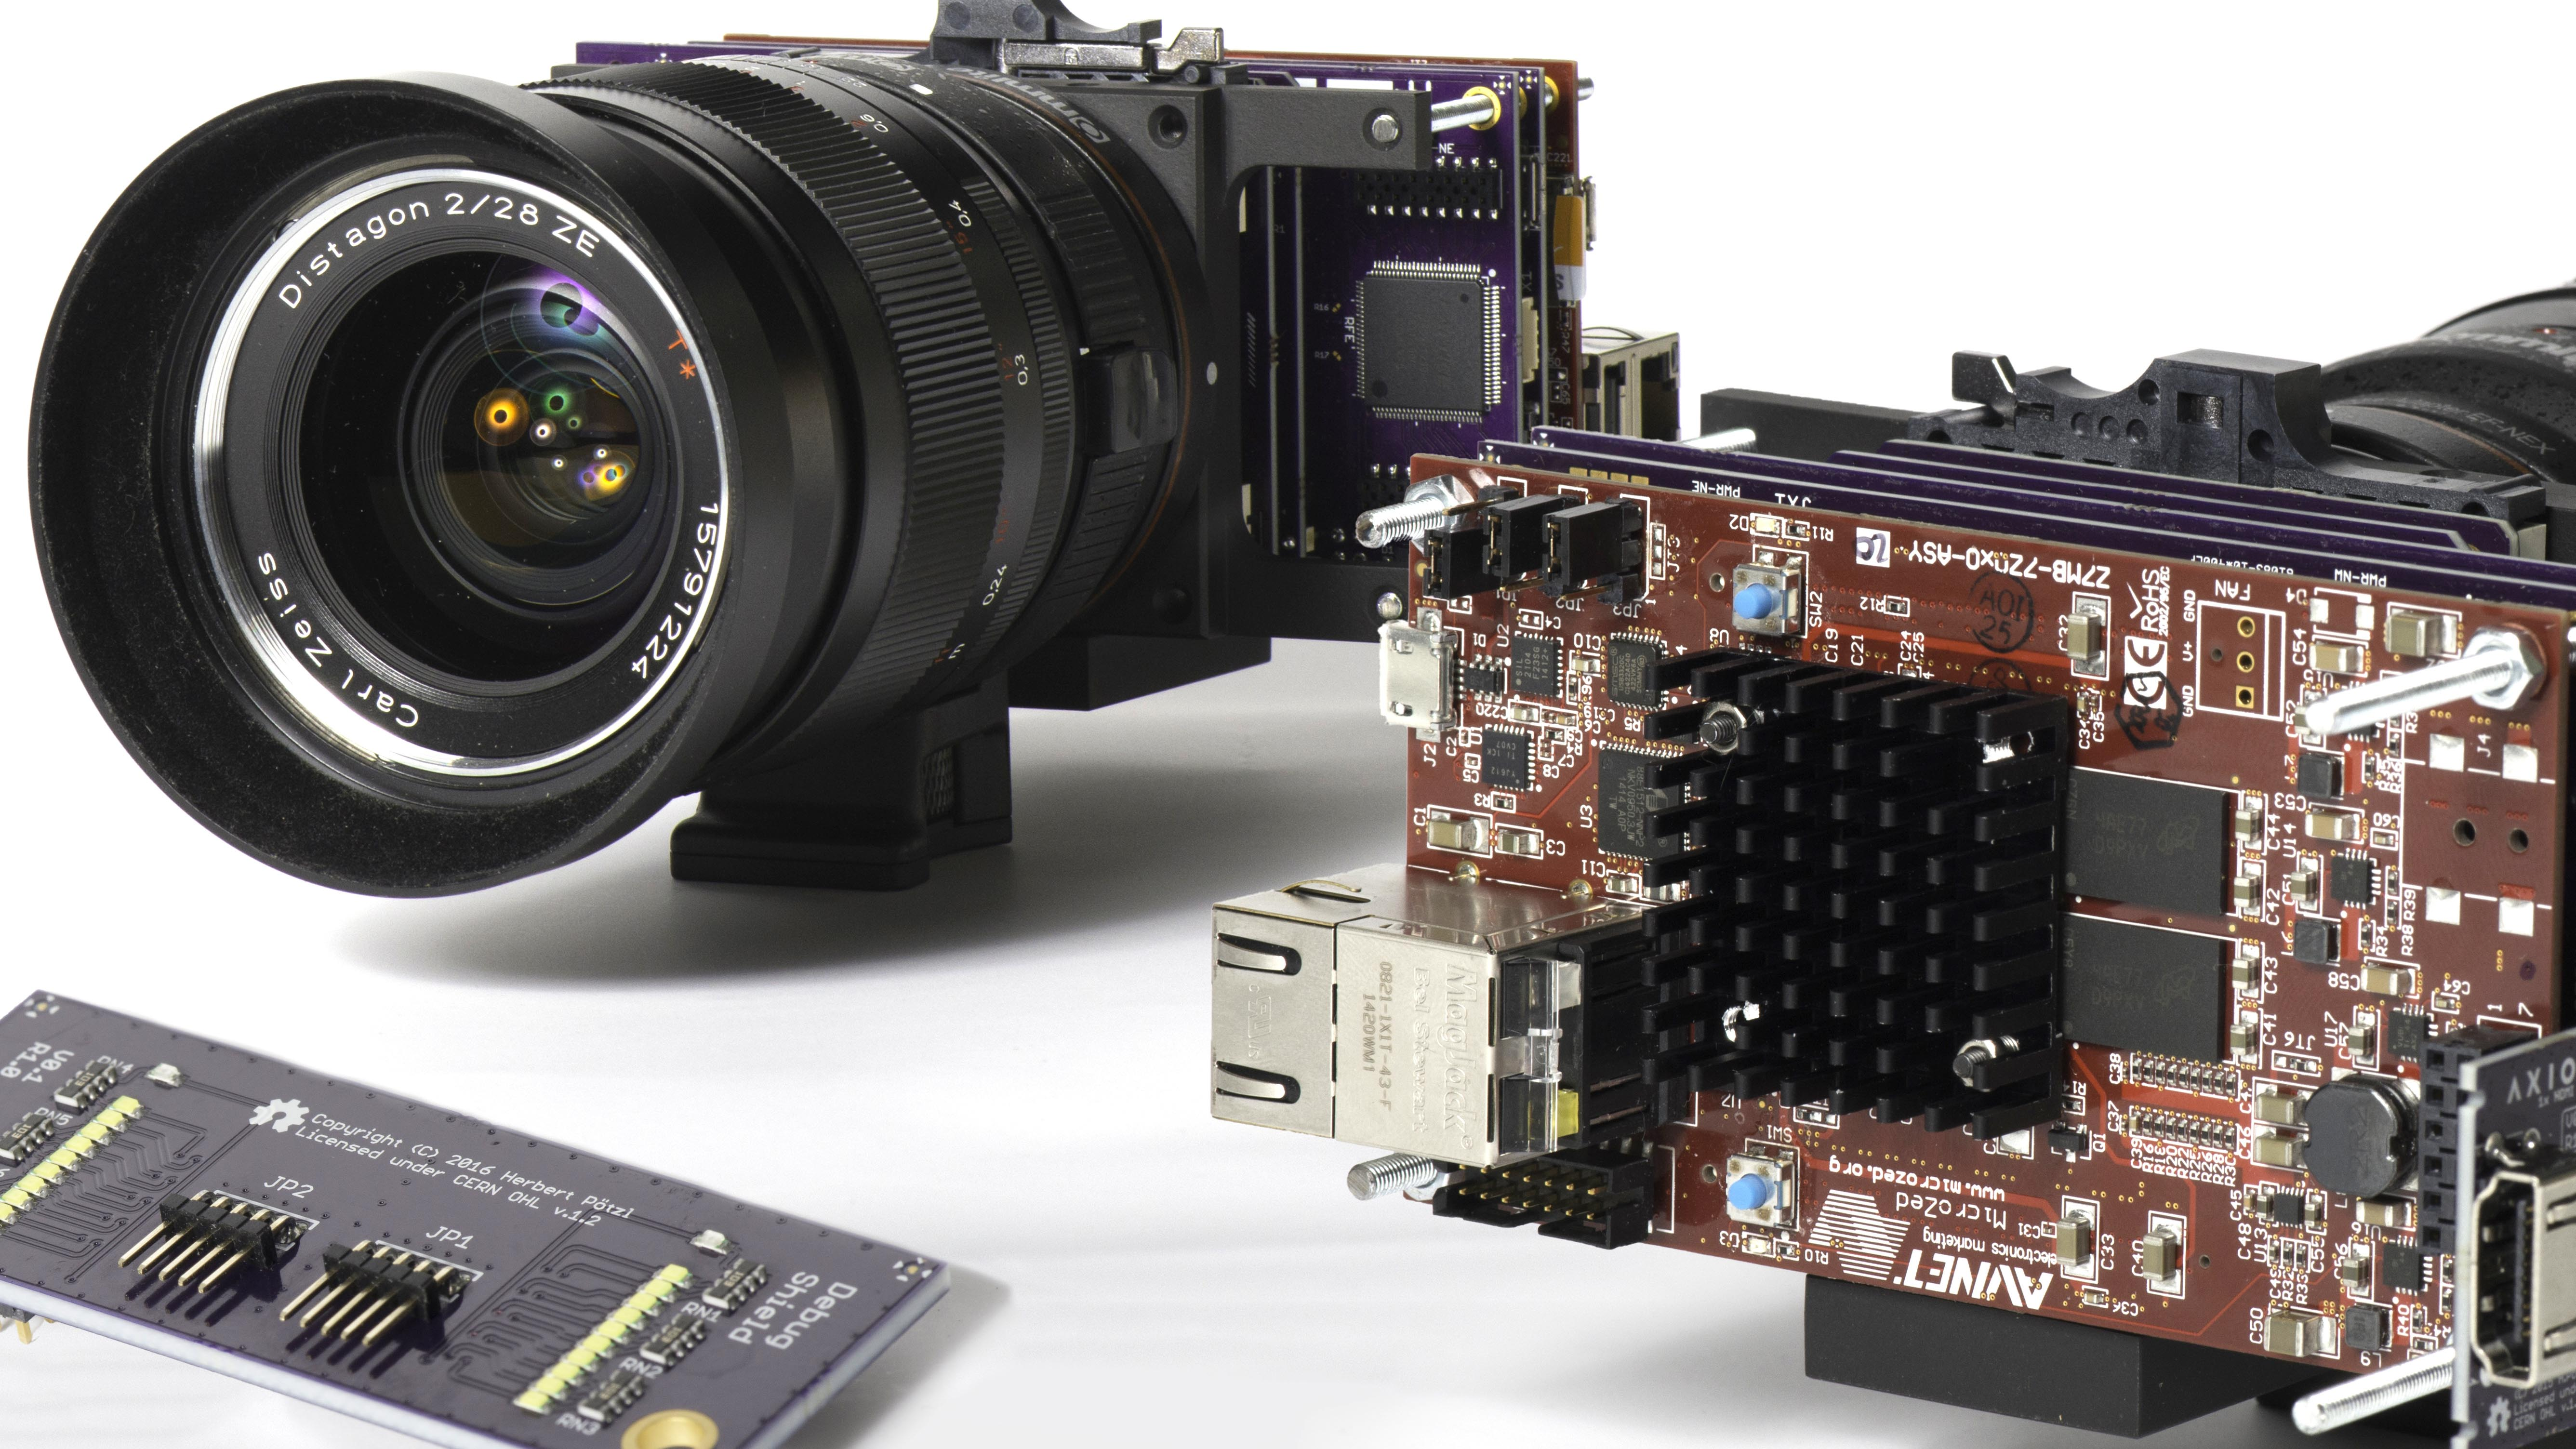 Apertus AXIOM Beta - Your Open Source Camera  An Update and